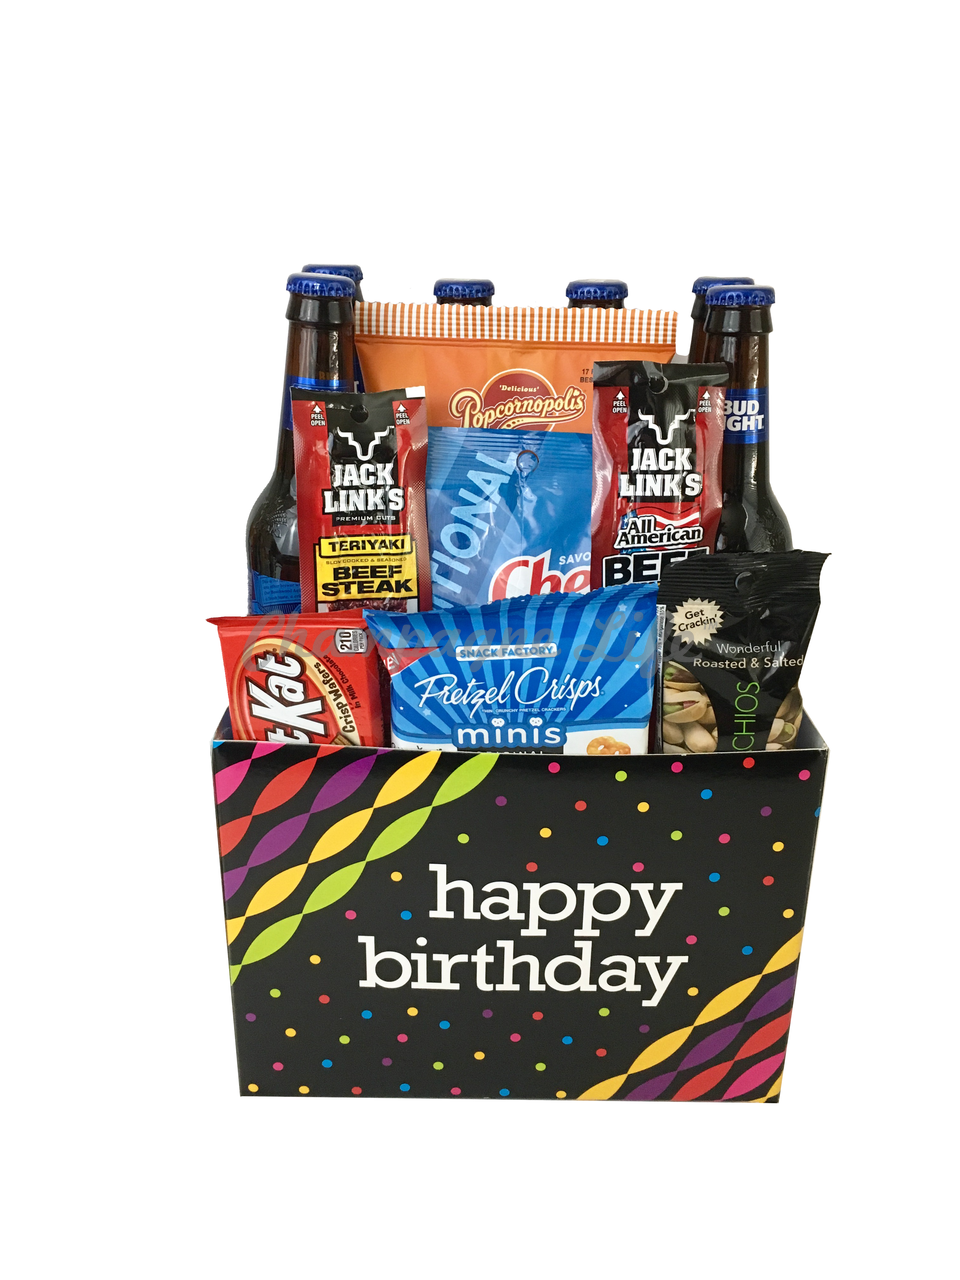 Birthday Beer Box Champagne Life Gift Baskets